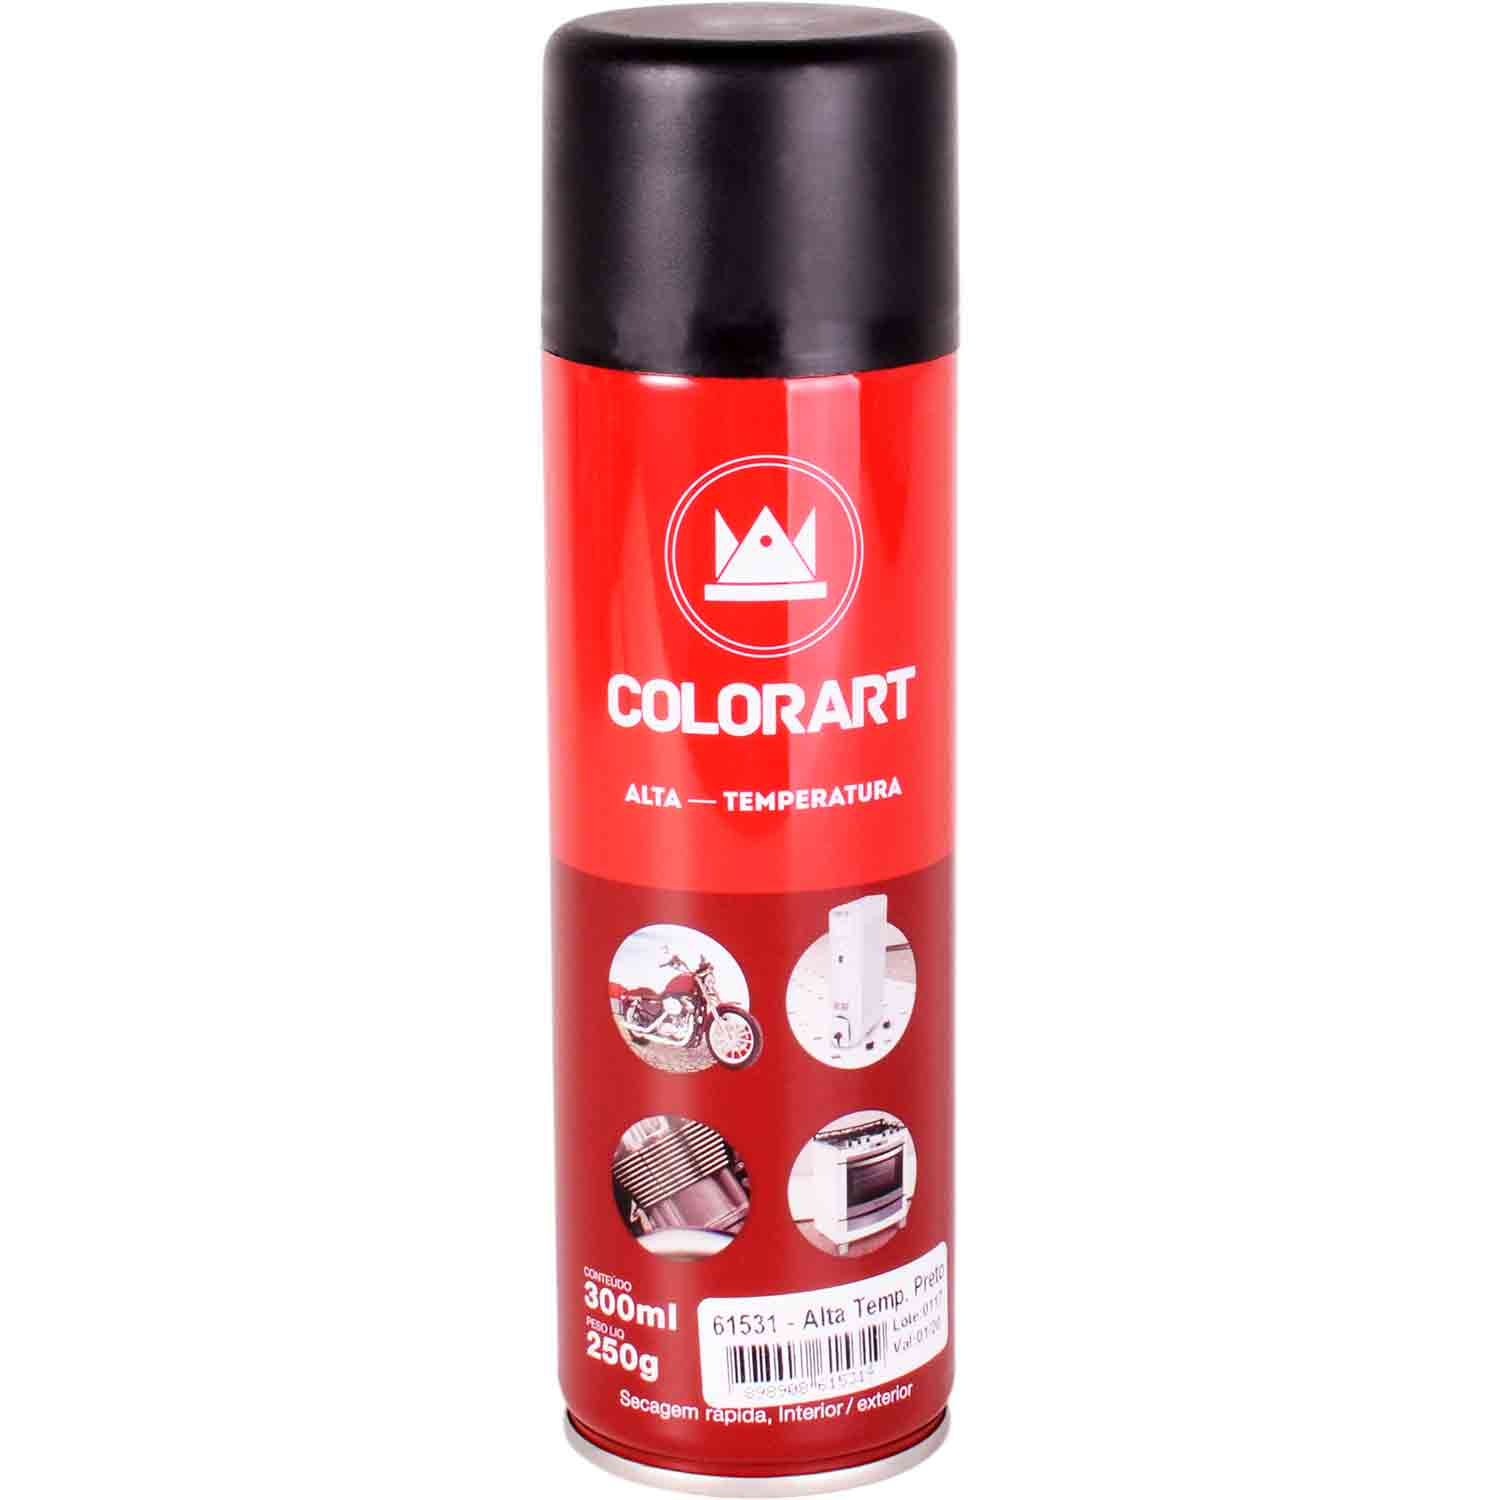 Tinta Spray Alta Temperatura Colorart 300ml